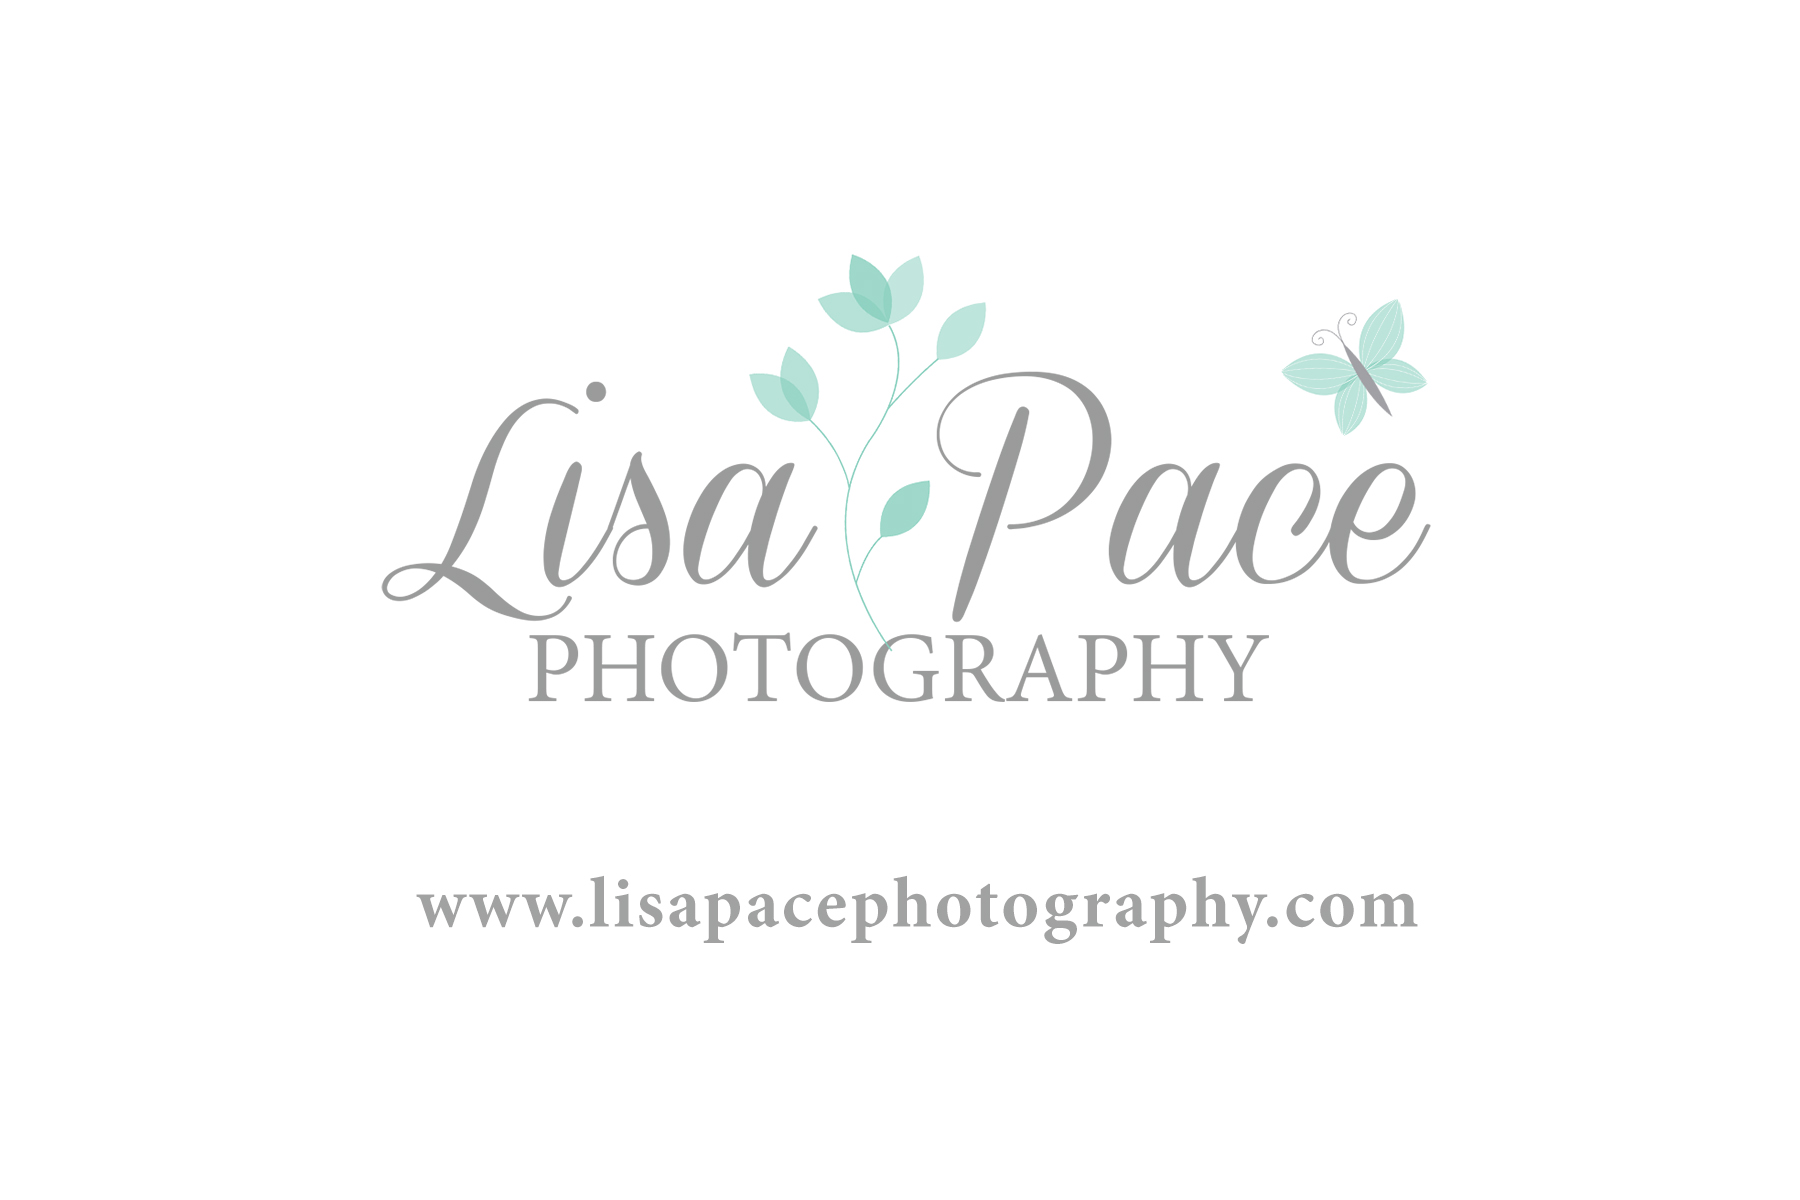 Lisa Pace Photography